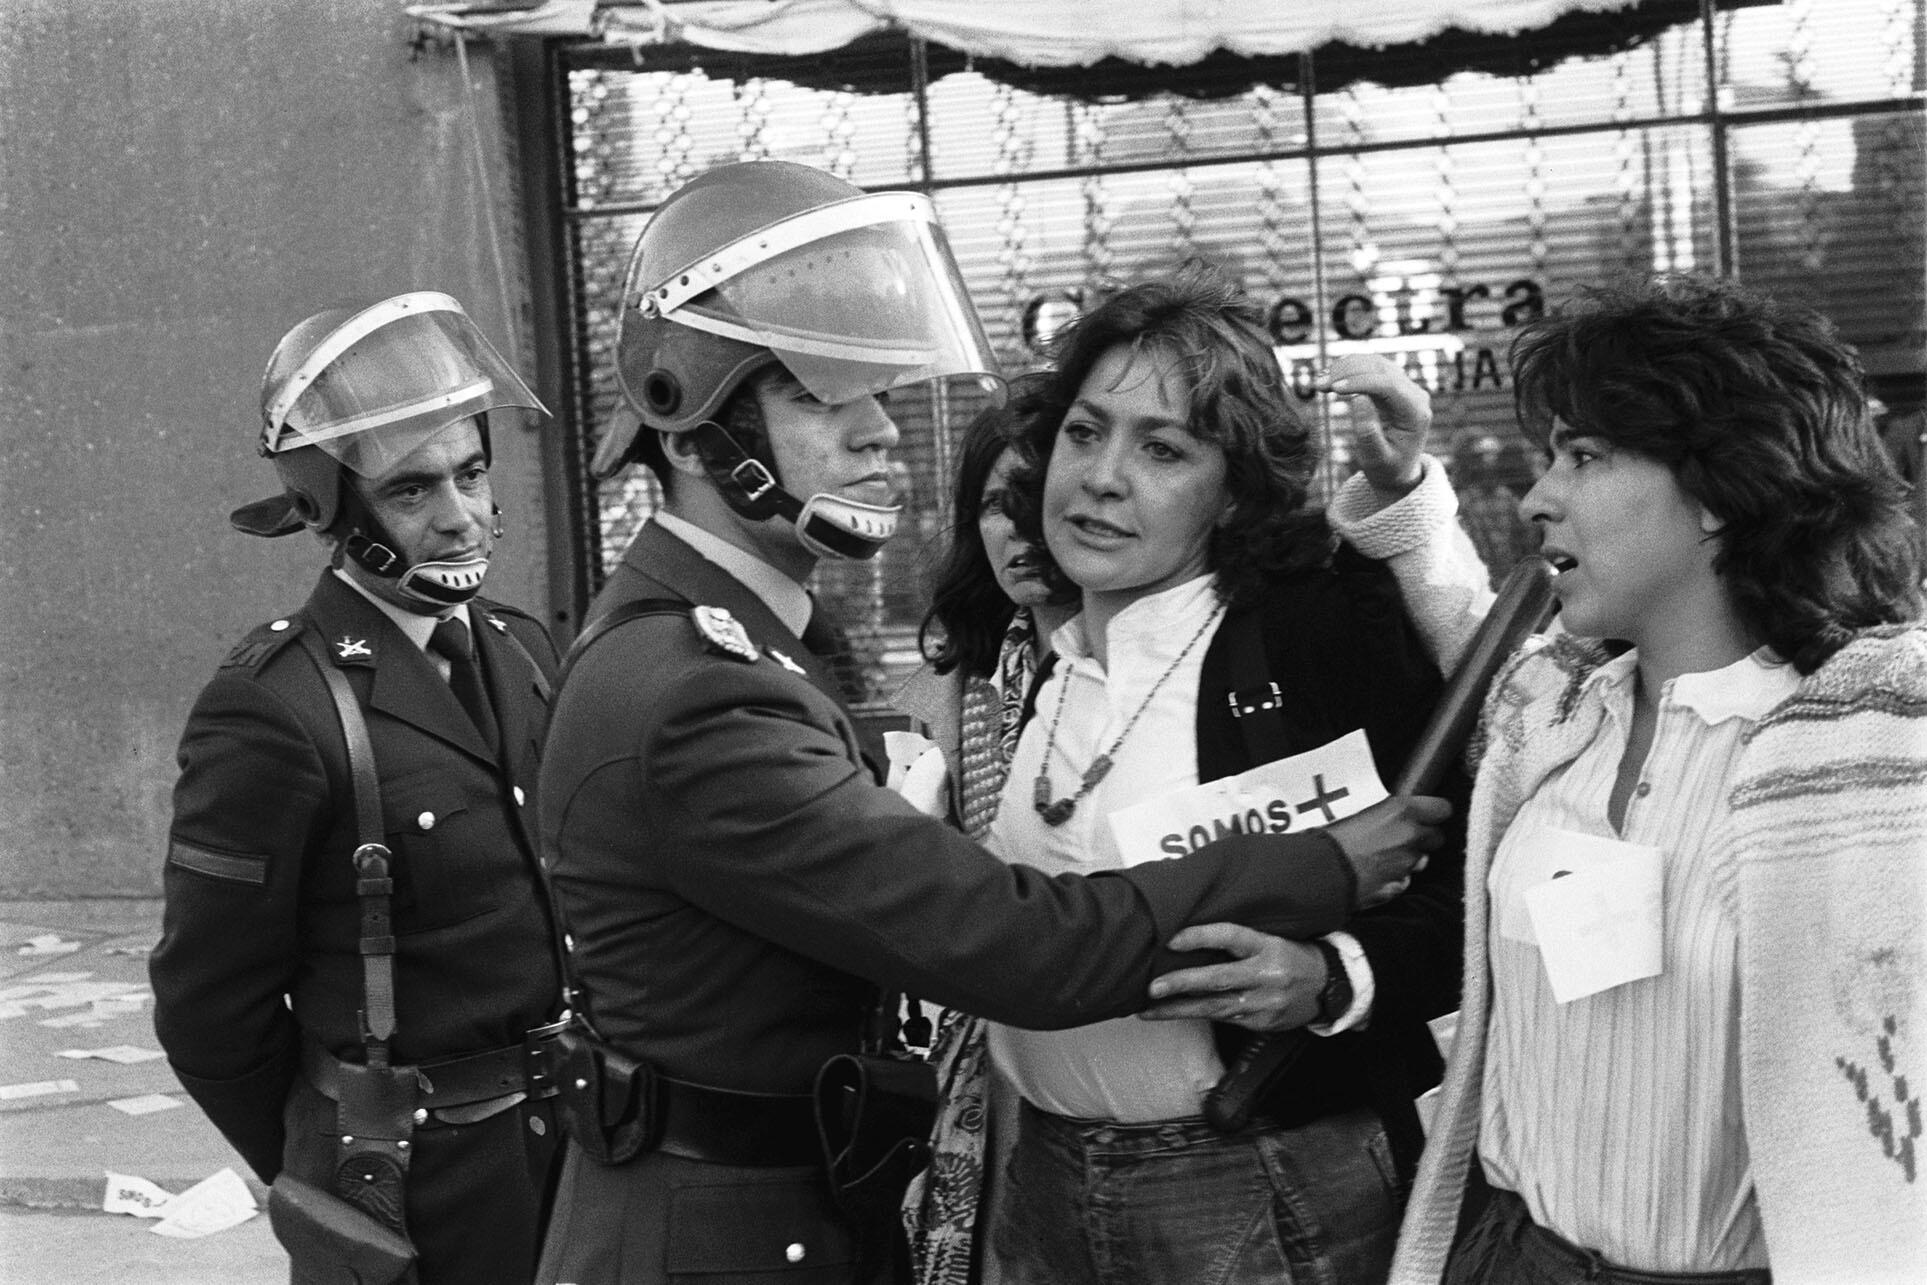 Mónica González Mujica (center) at a women's march in Chile, 1986. (Photo by Juan Carlos Cáceres.)